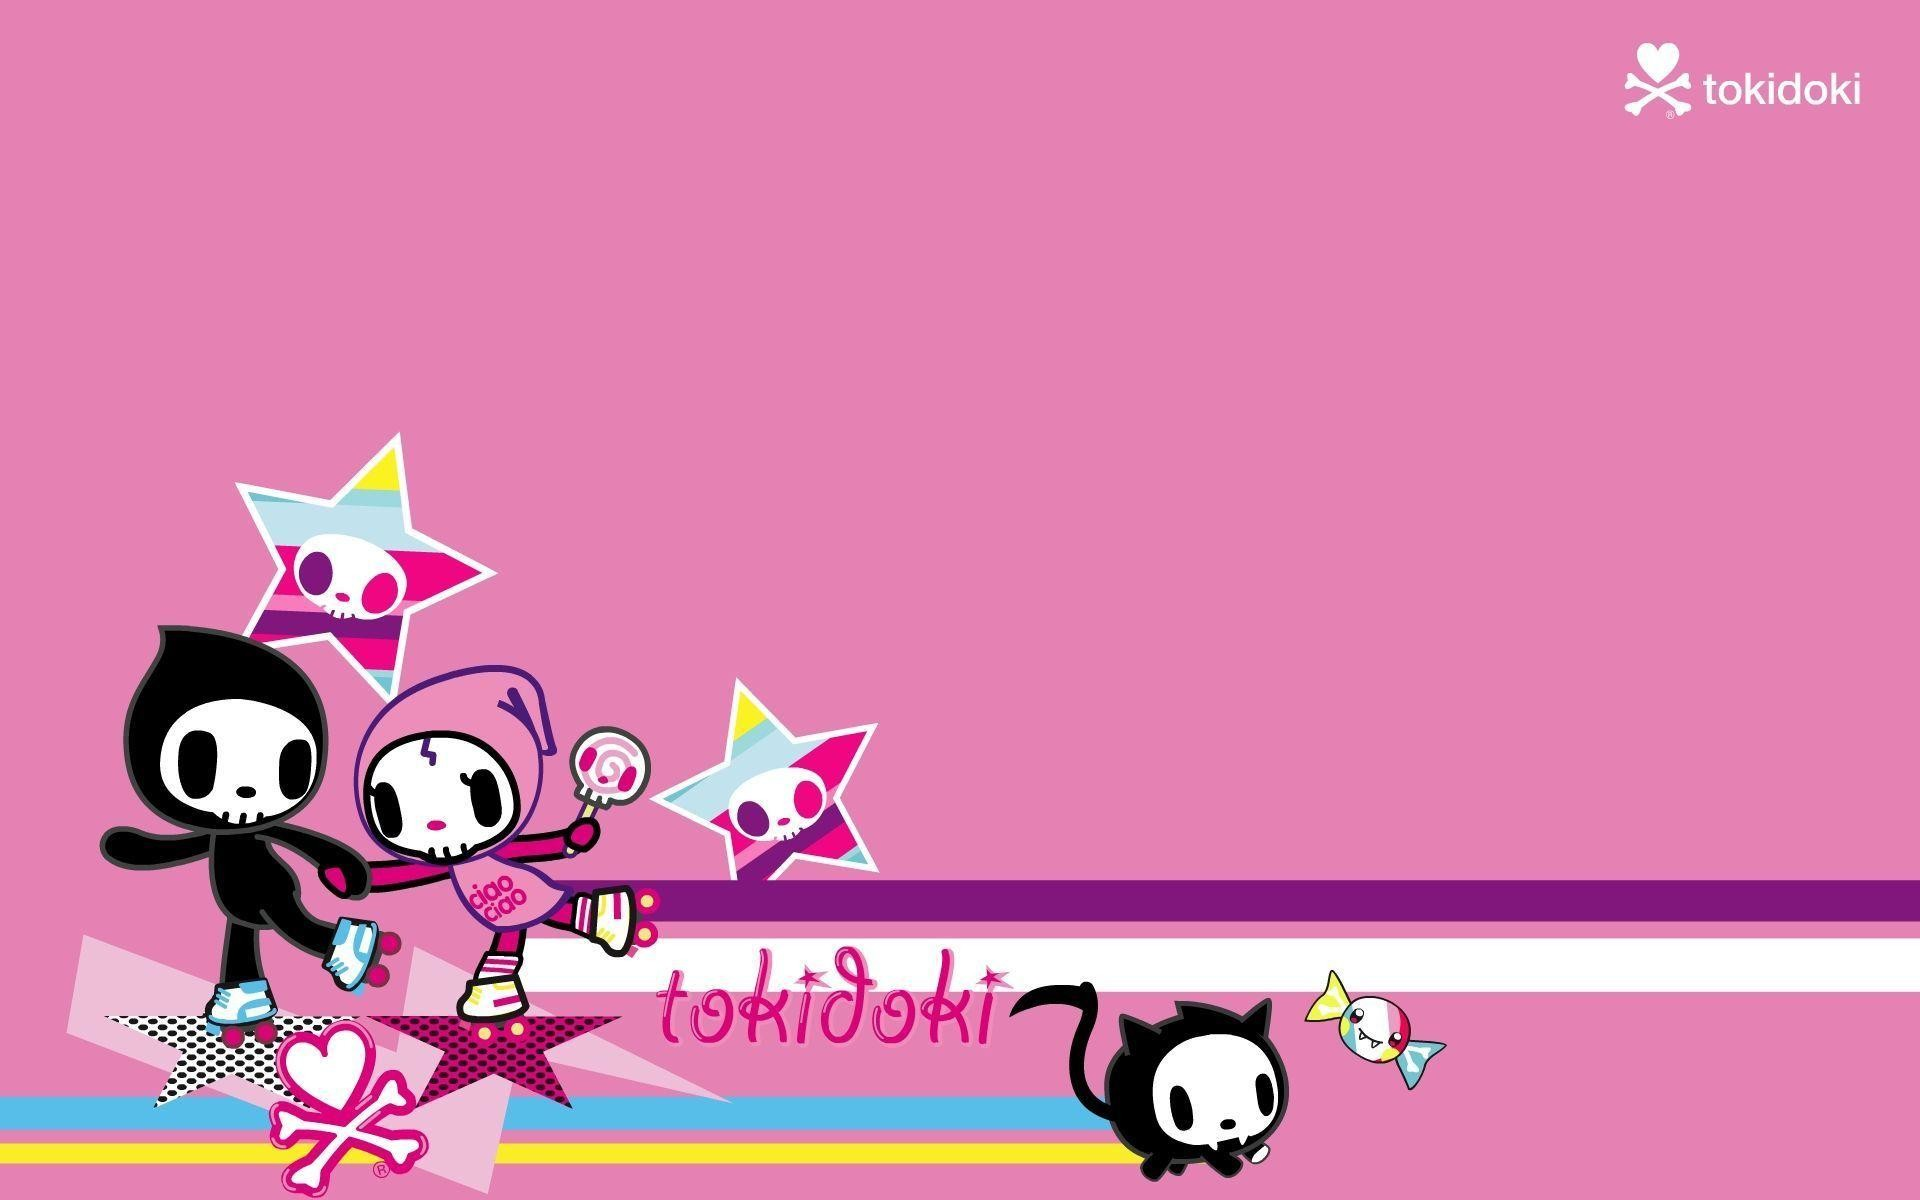 Tokidoki Unicorno Wallpaper